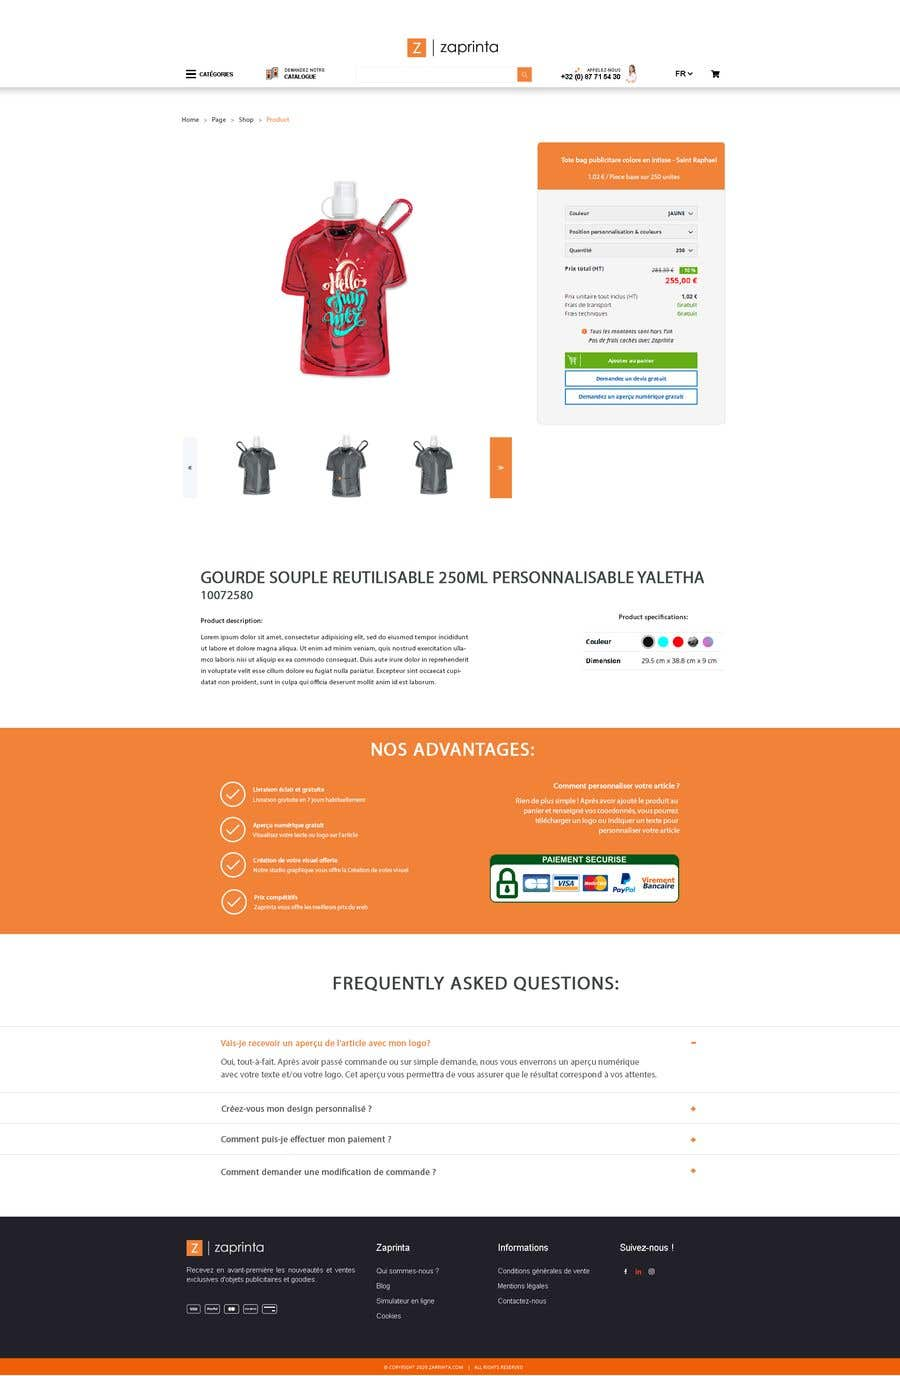 Penyertaan Peraduan #                                        31                                      untuk                                         Create a new product page template for my E-commerce website